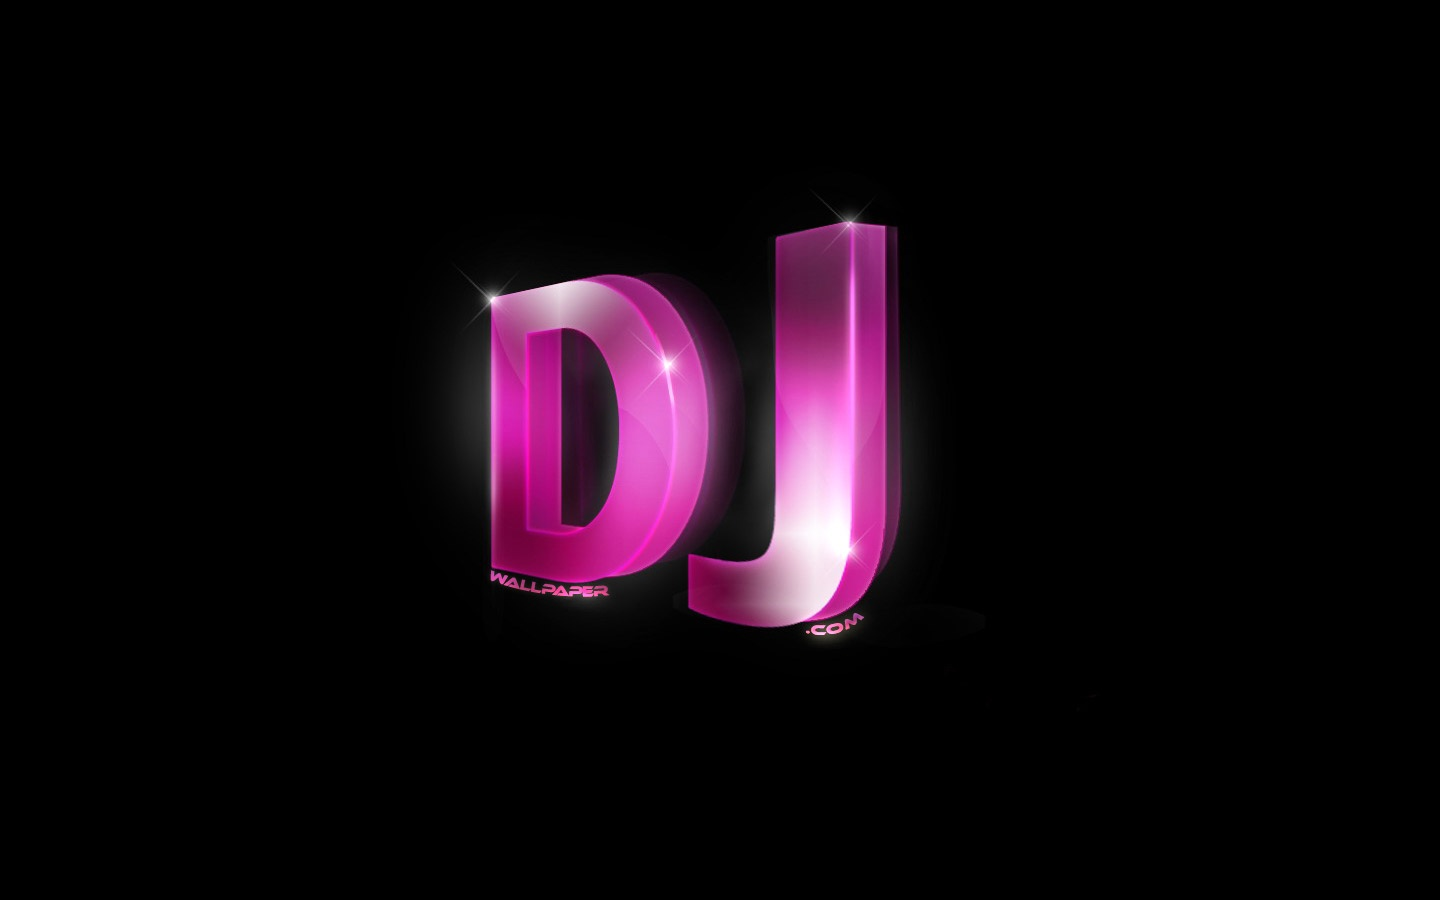 Dmsj Name Image Hd: DJ Songs & HD Wallpapers